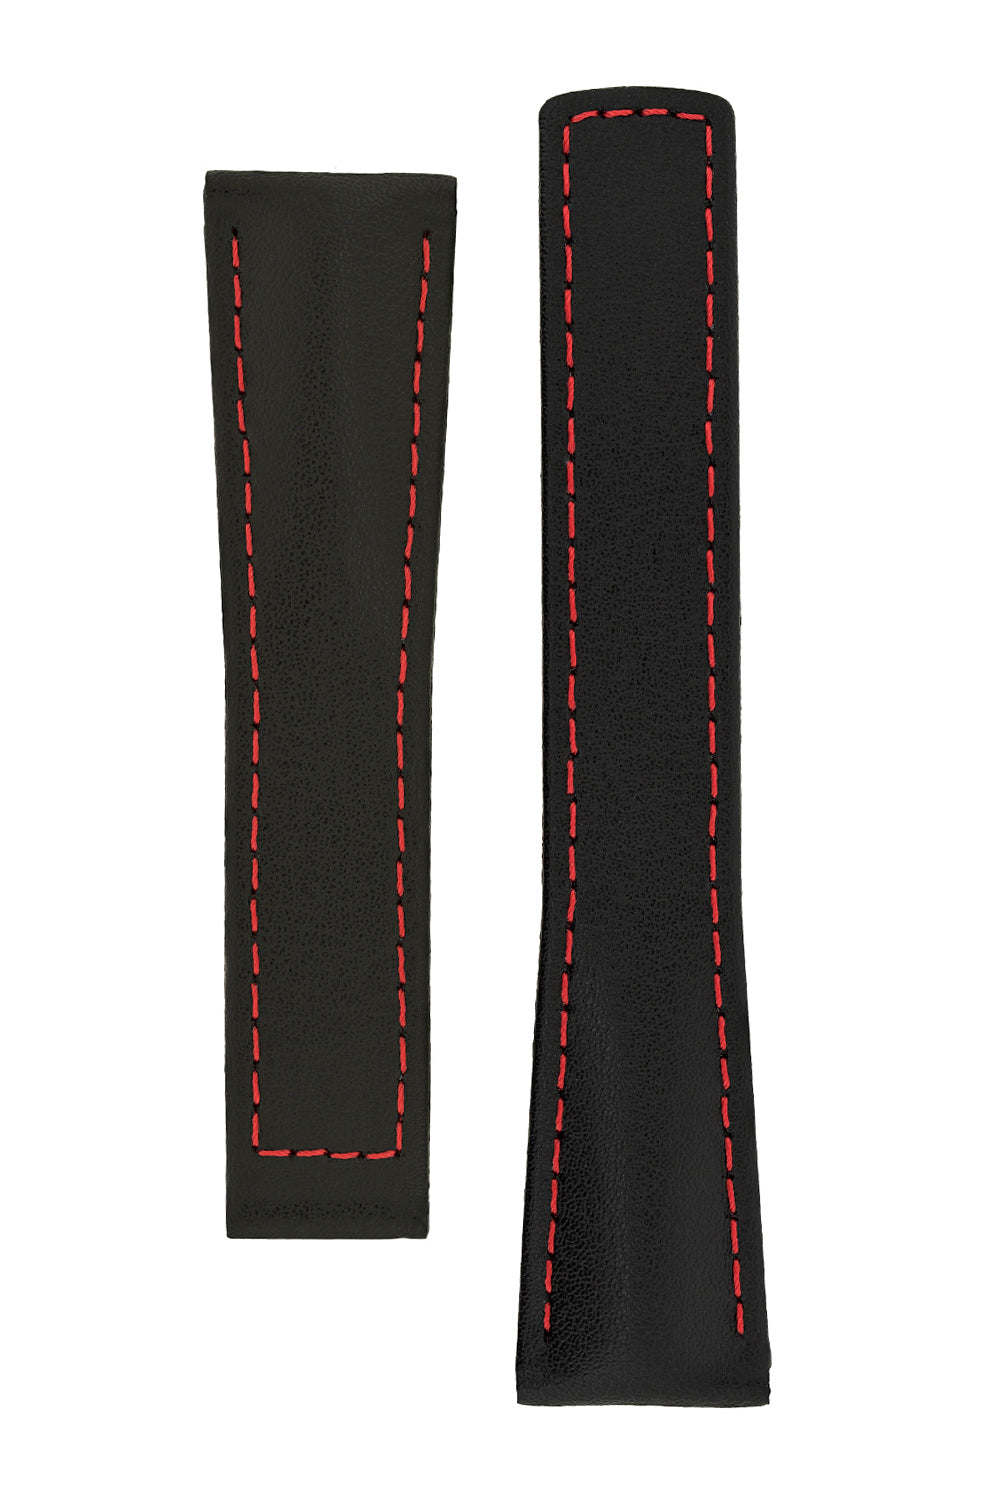 Hirsch SPEED Calfskin Deployment Watch Strap in BLACK/RED